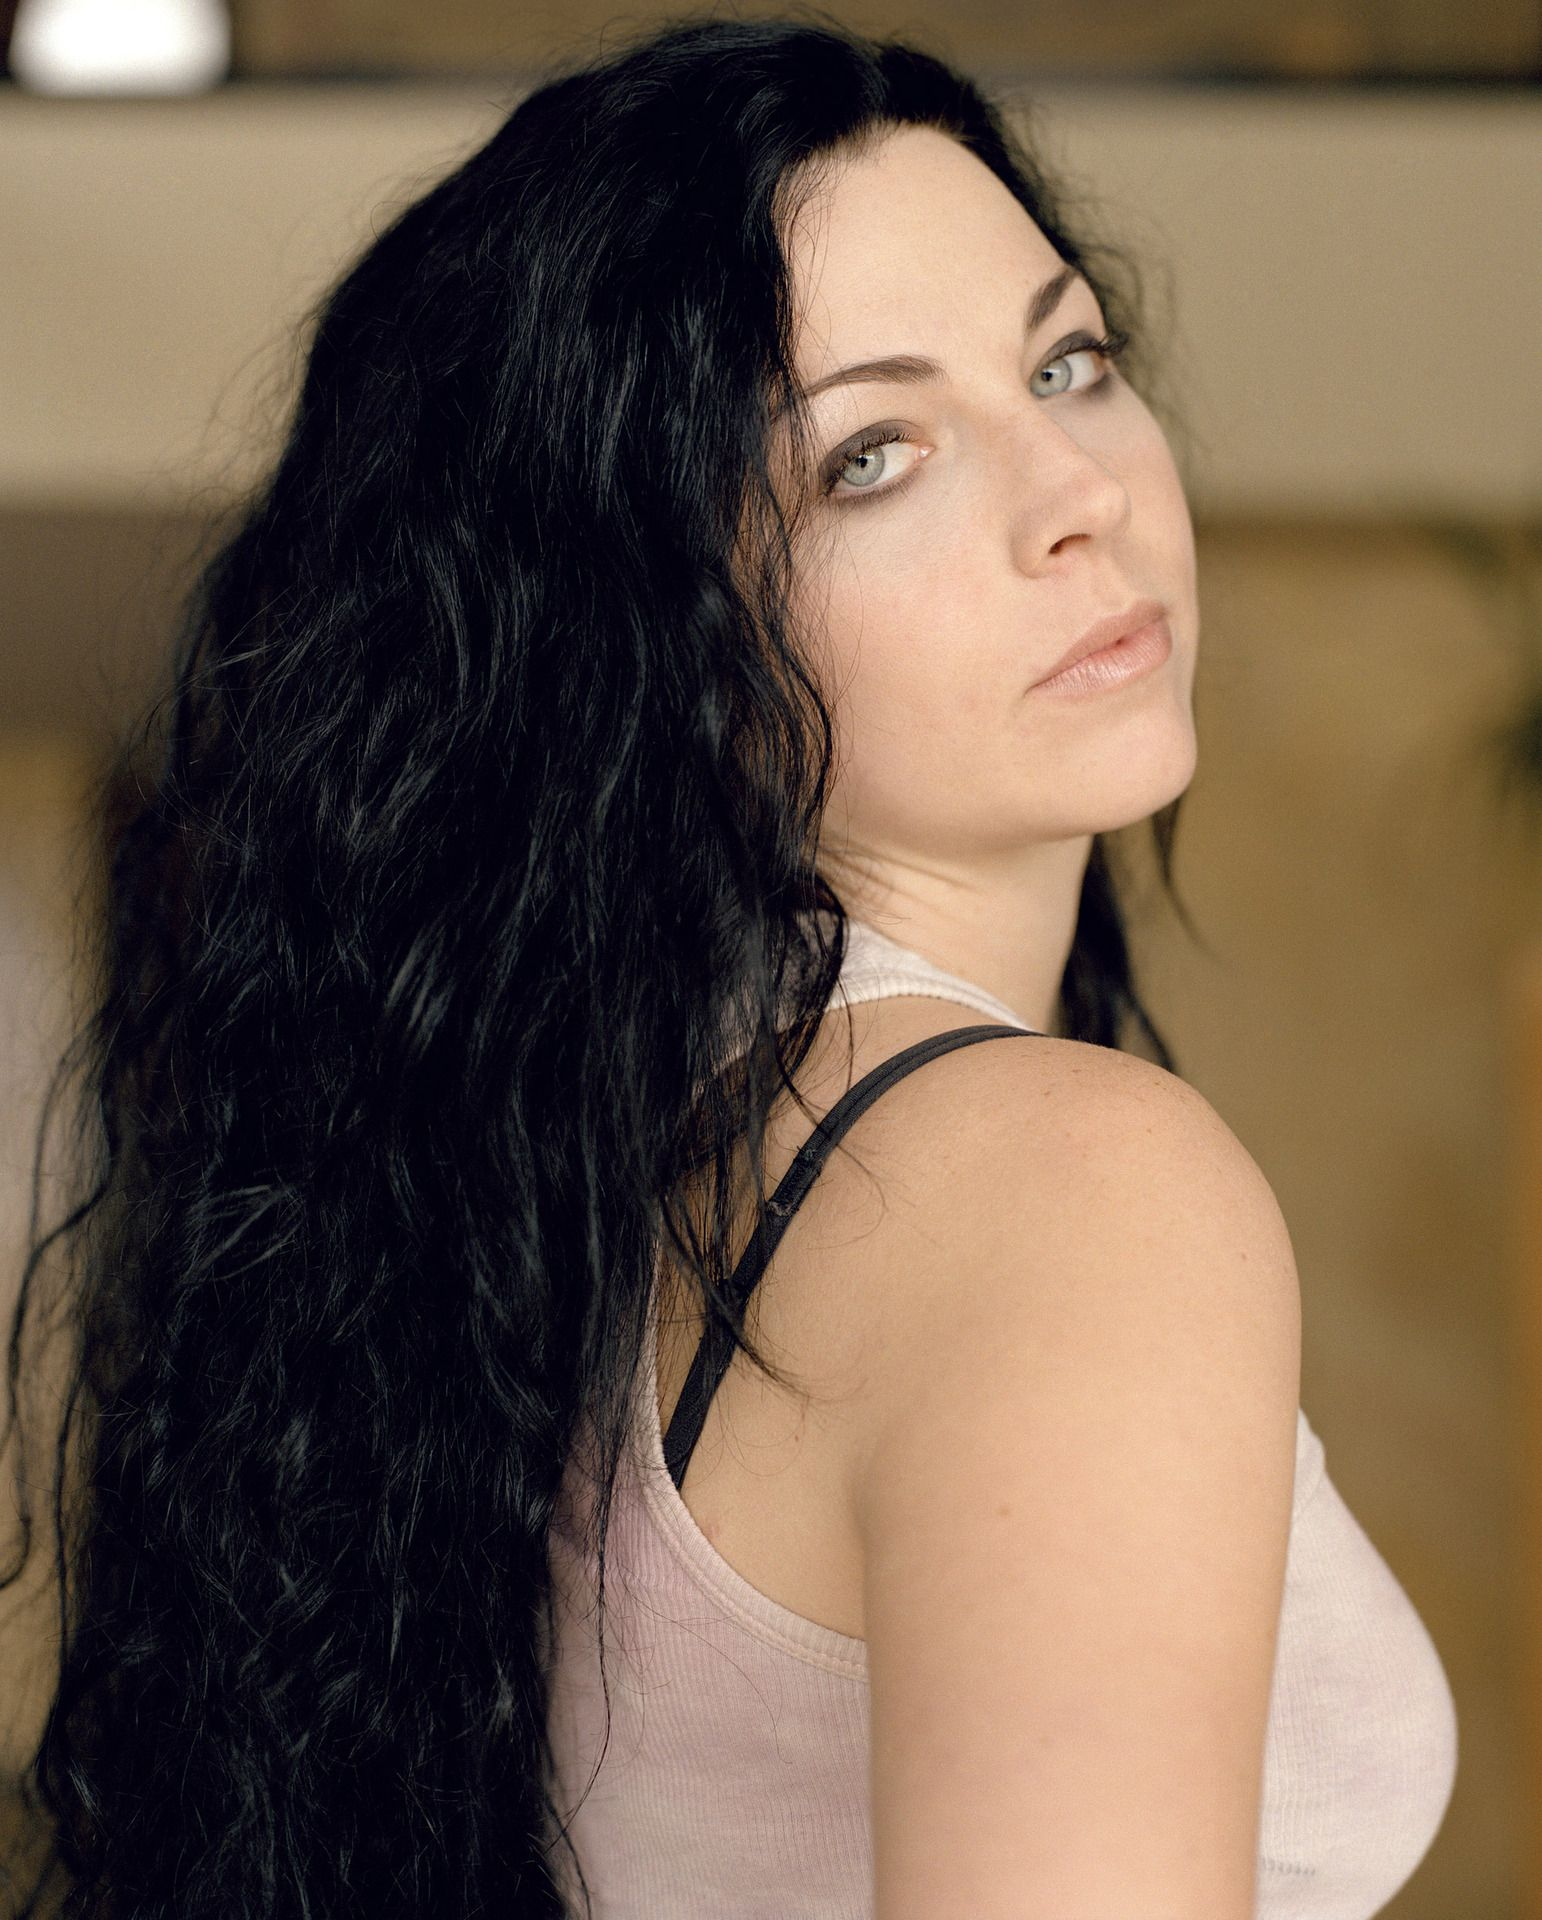 Lee hot amy Amylee Fit